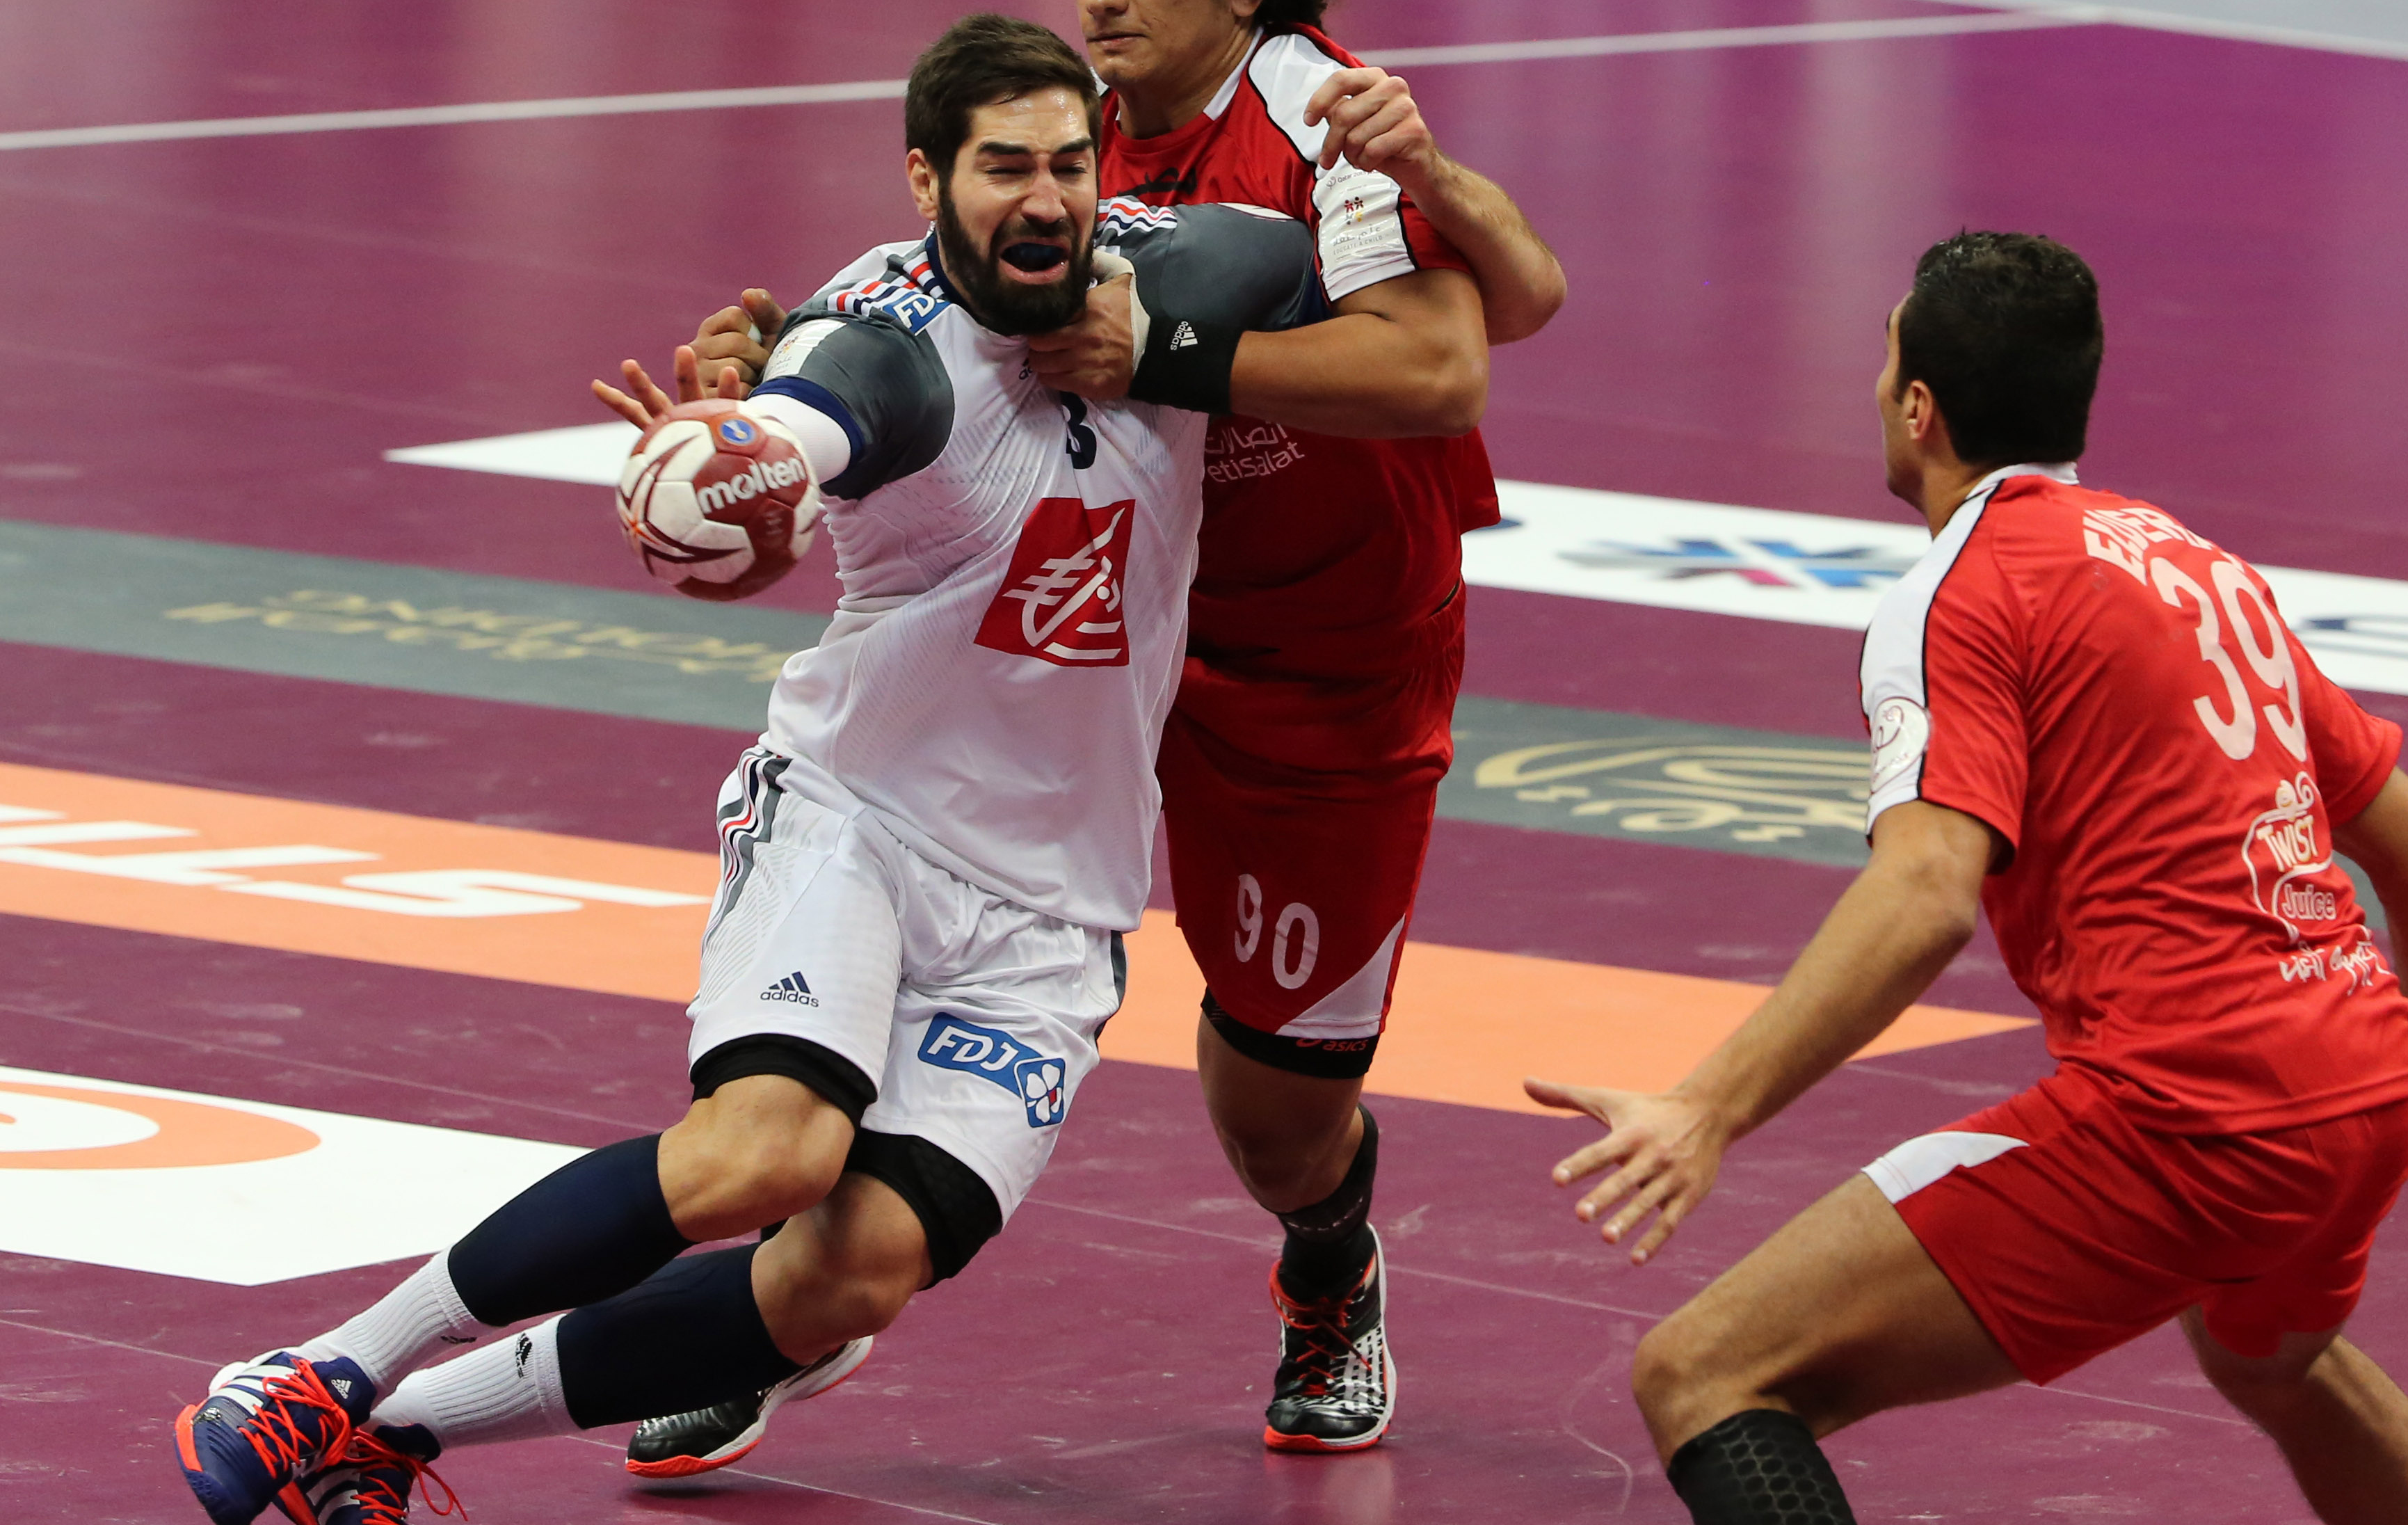 Chaussure handball nikola karabatic - Made in sport vitrolles ...